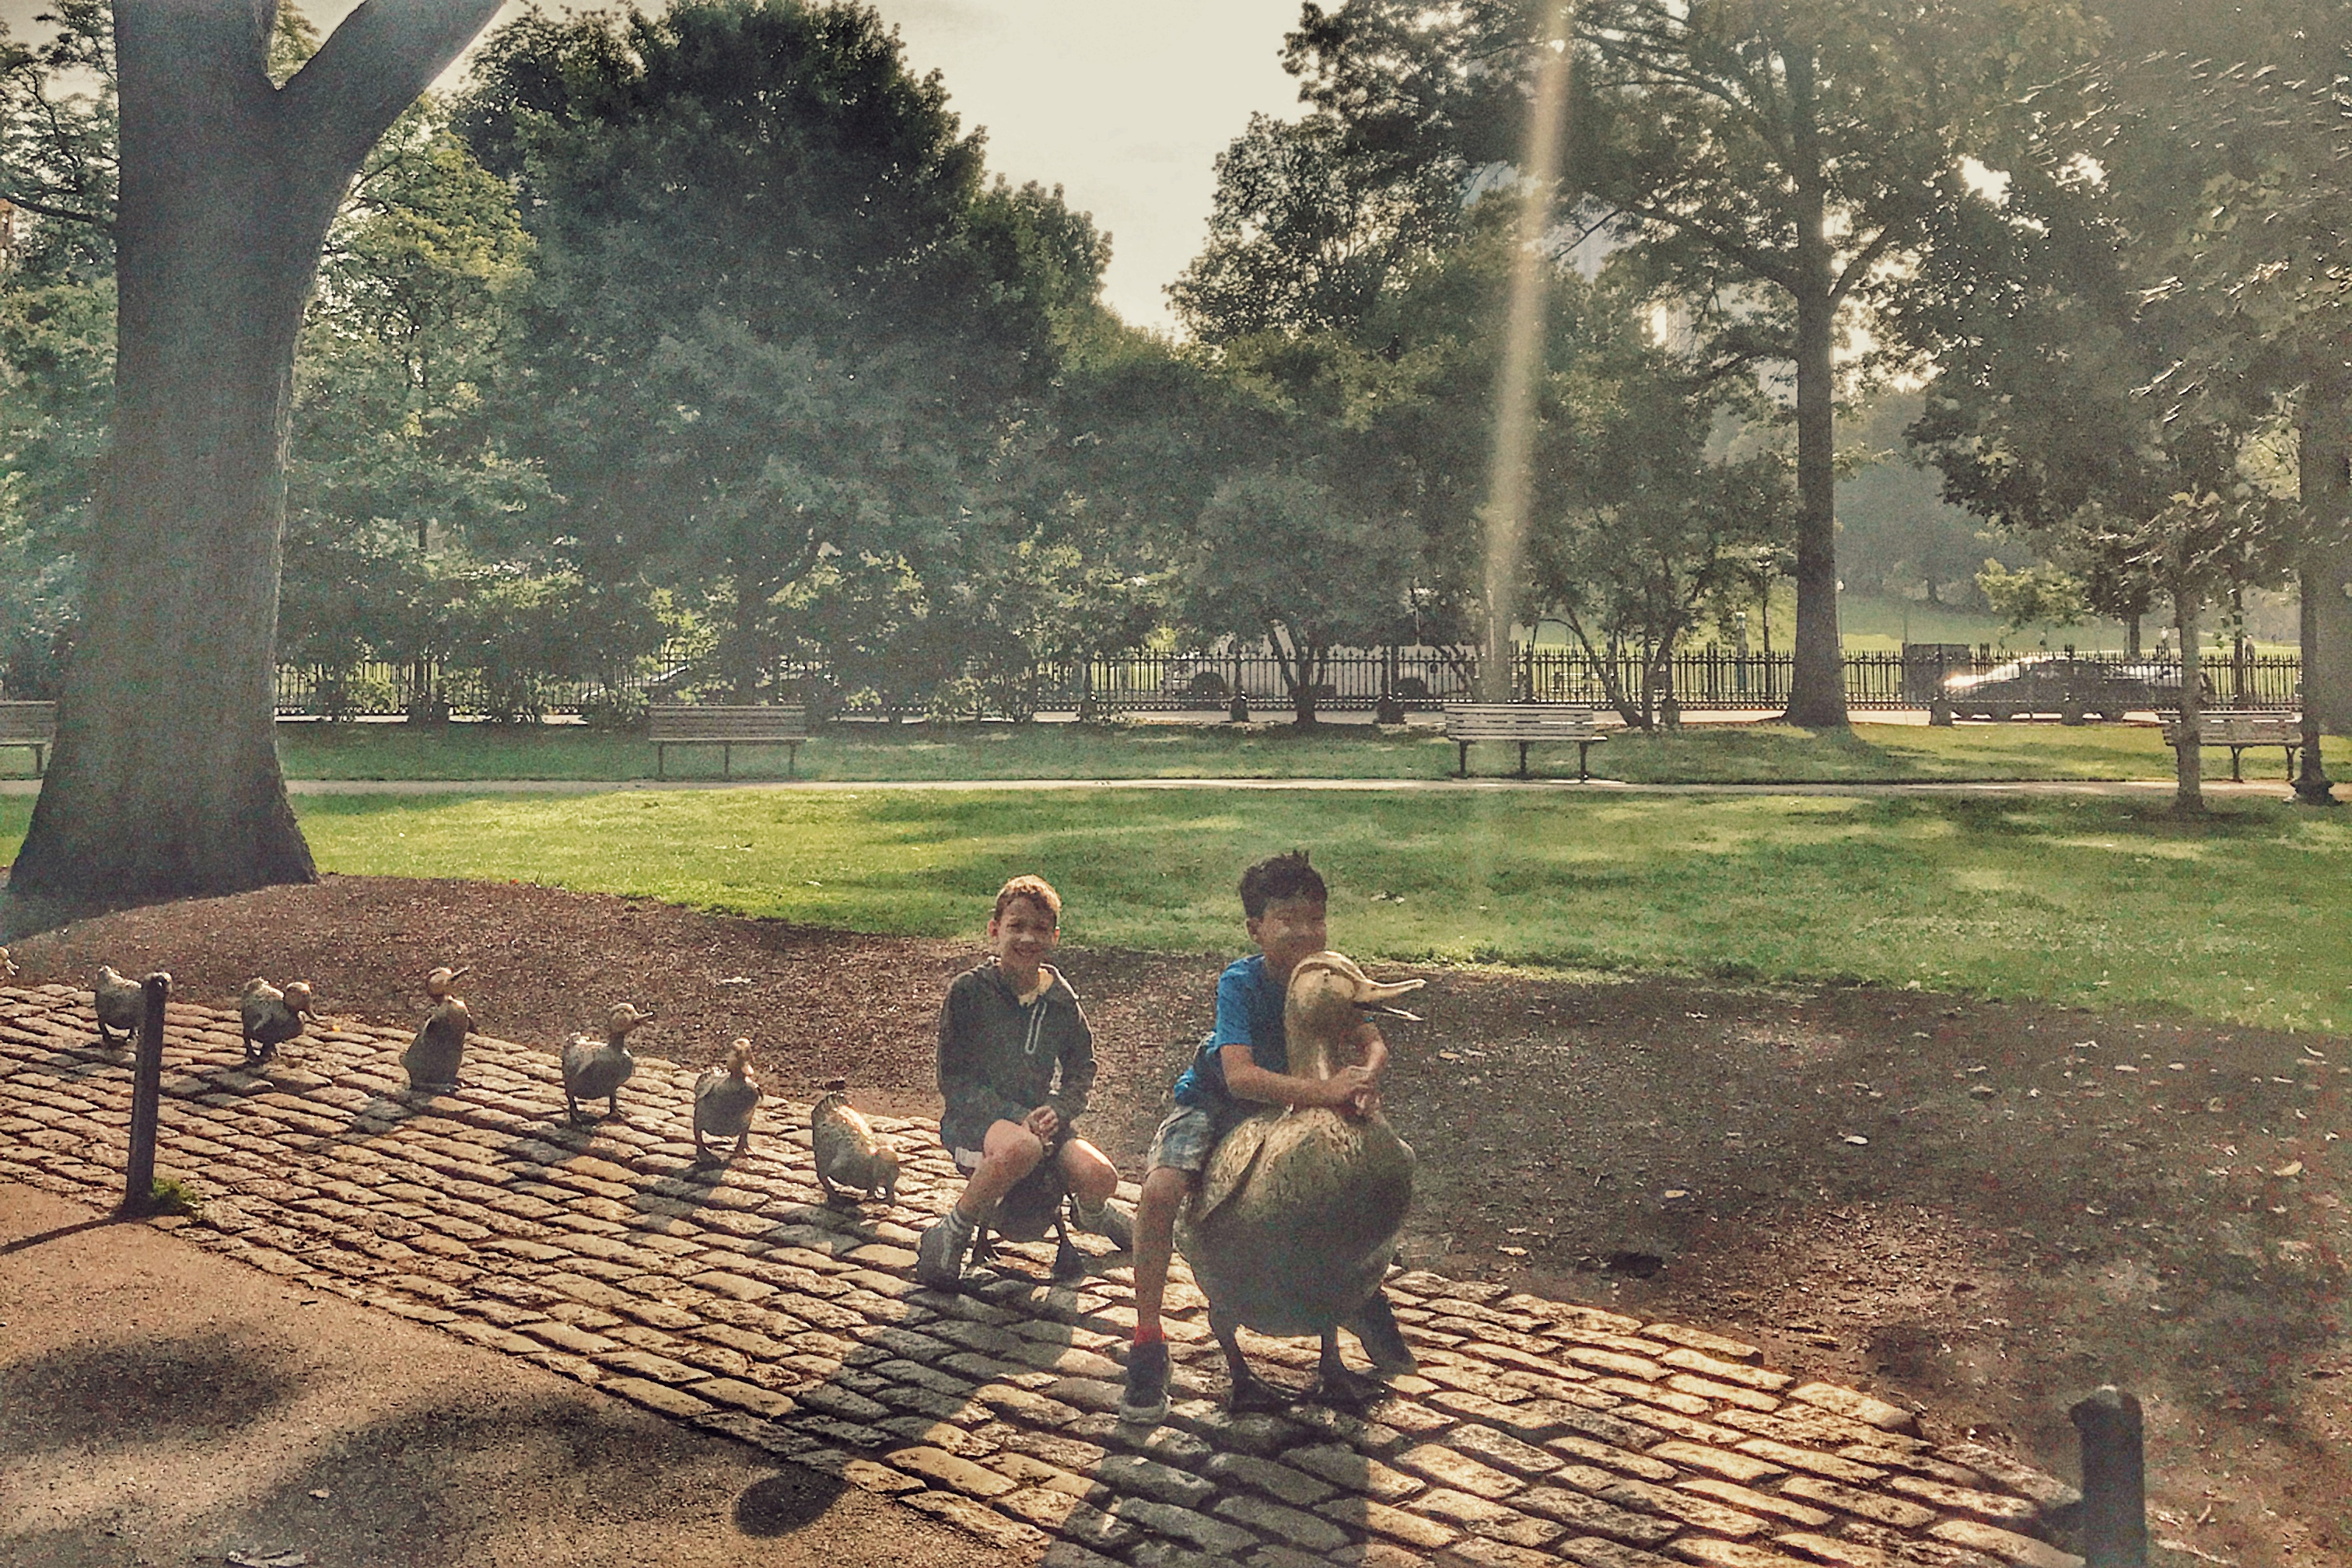 Make way for duckling in Boston with kids